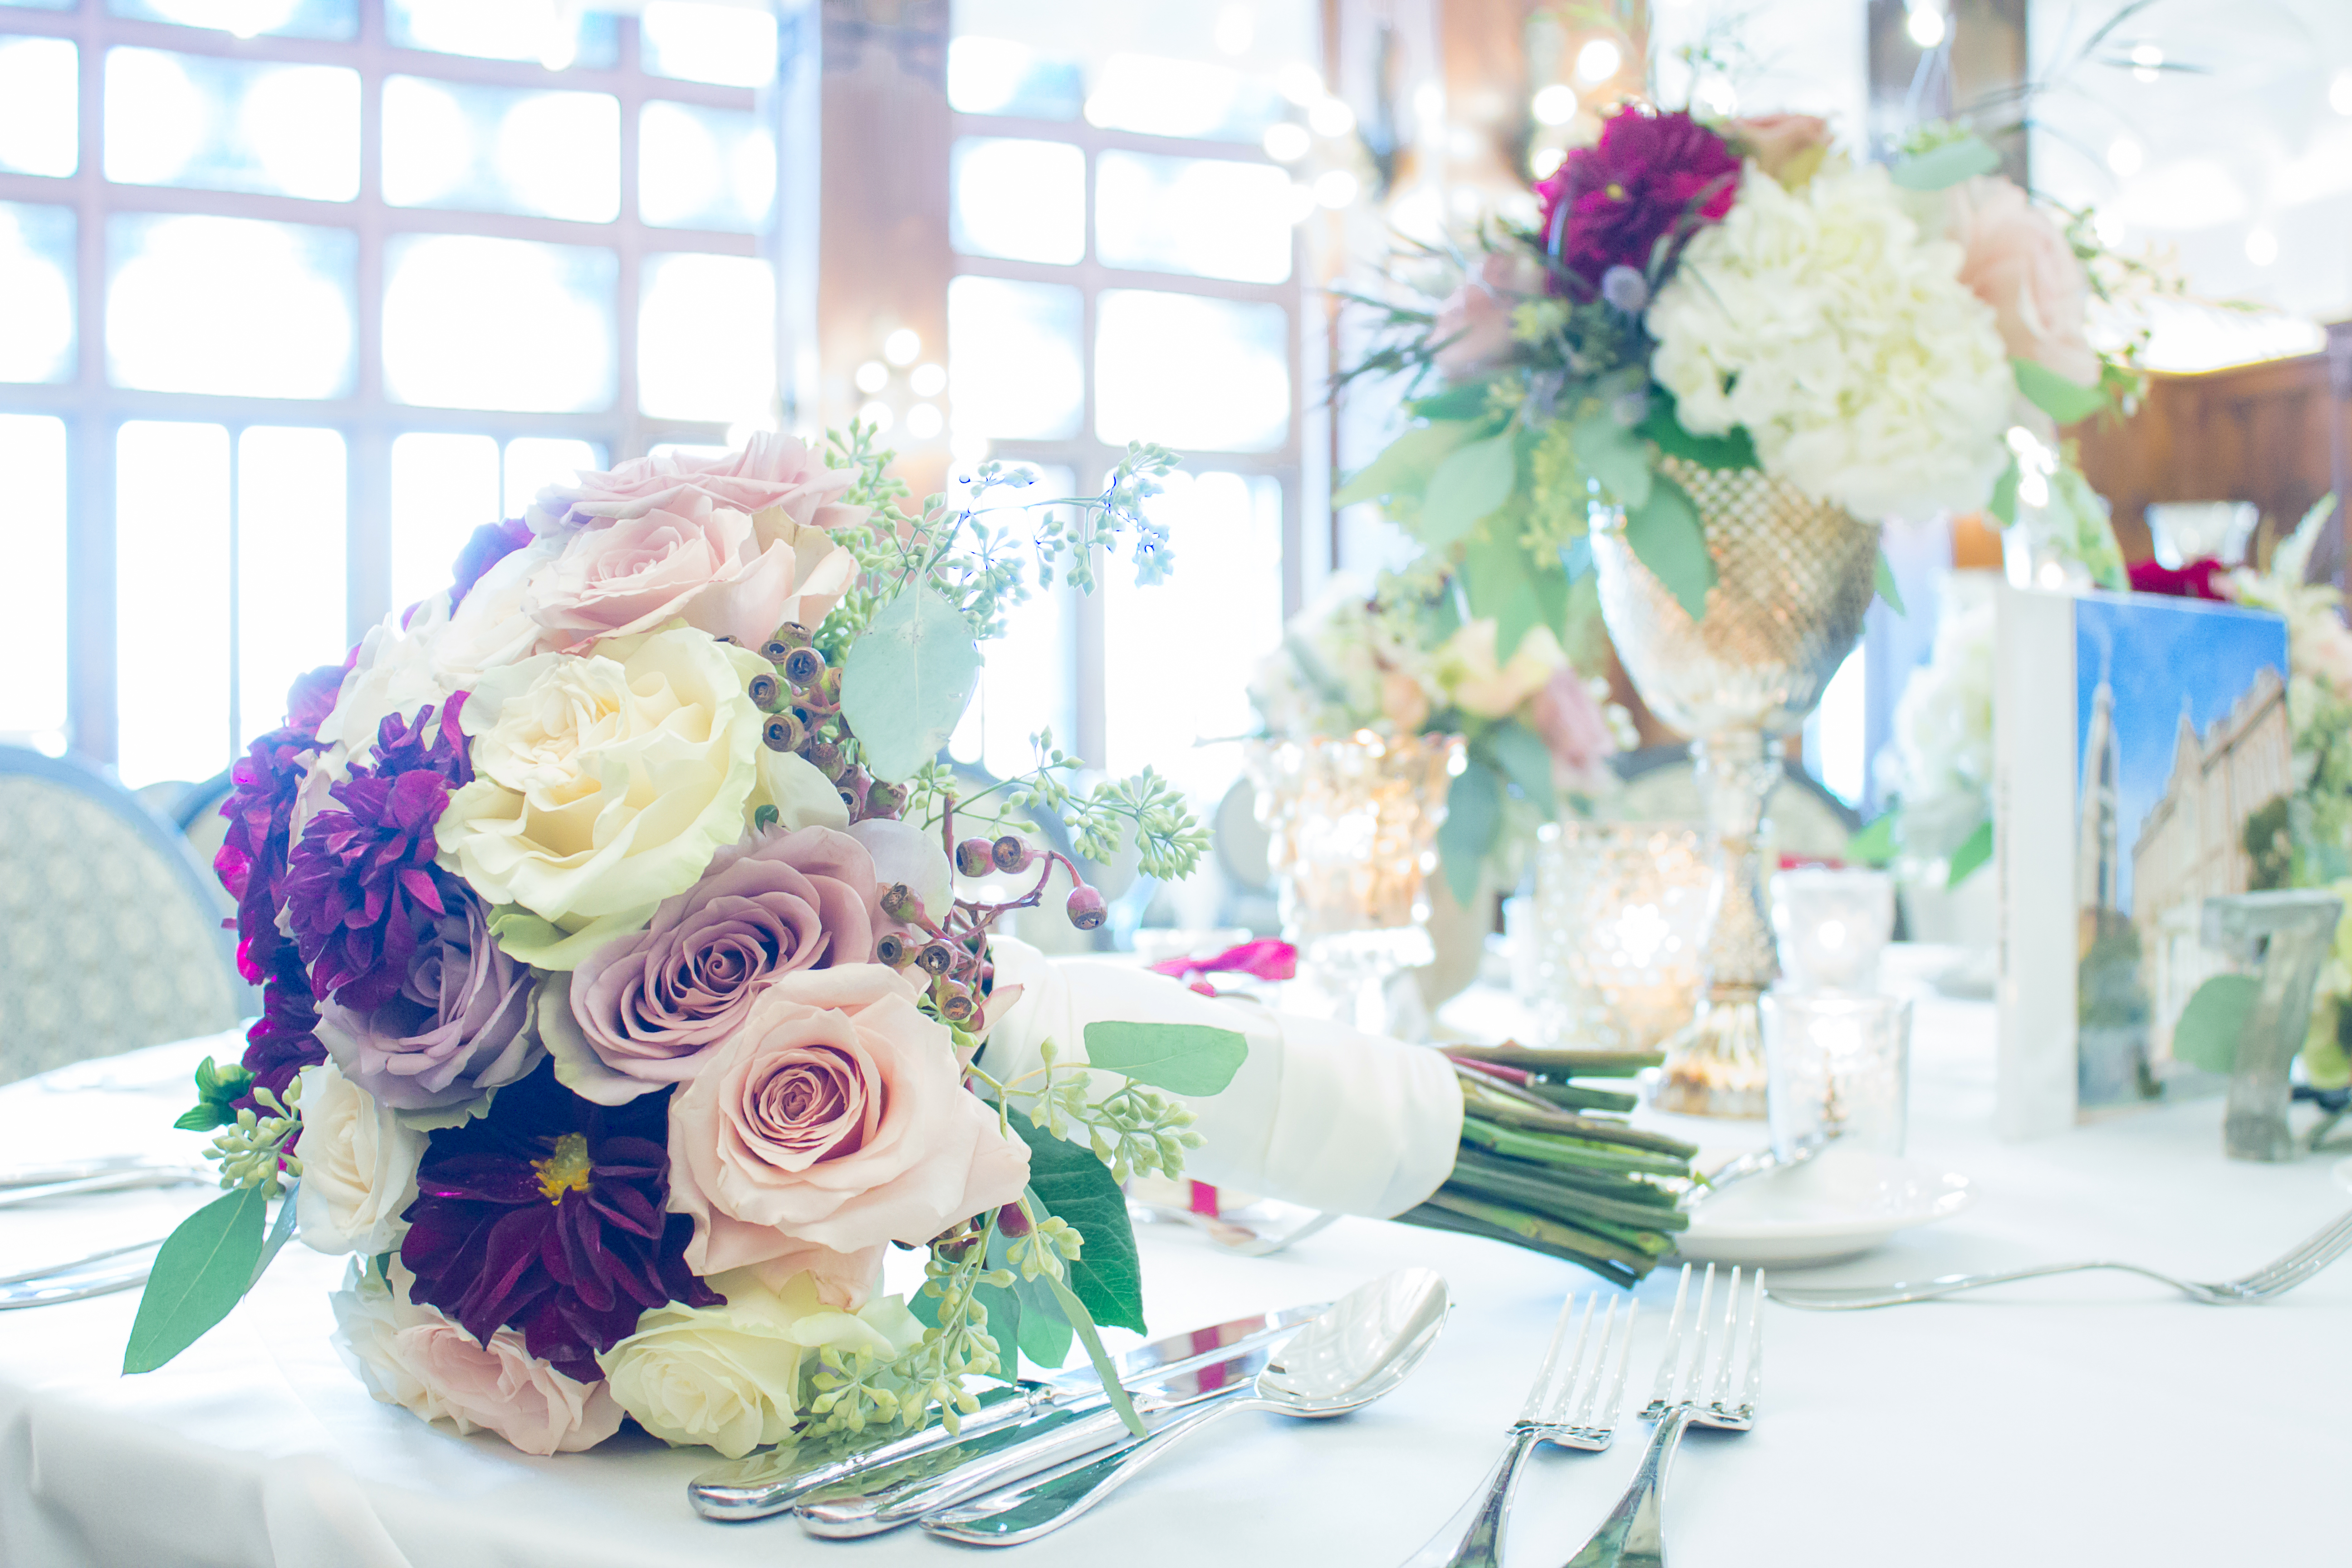 Posted by Ashland Addison Floral and Event Decor - A Design/Decor/Floral professional